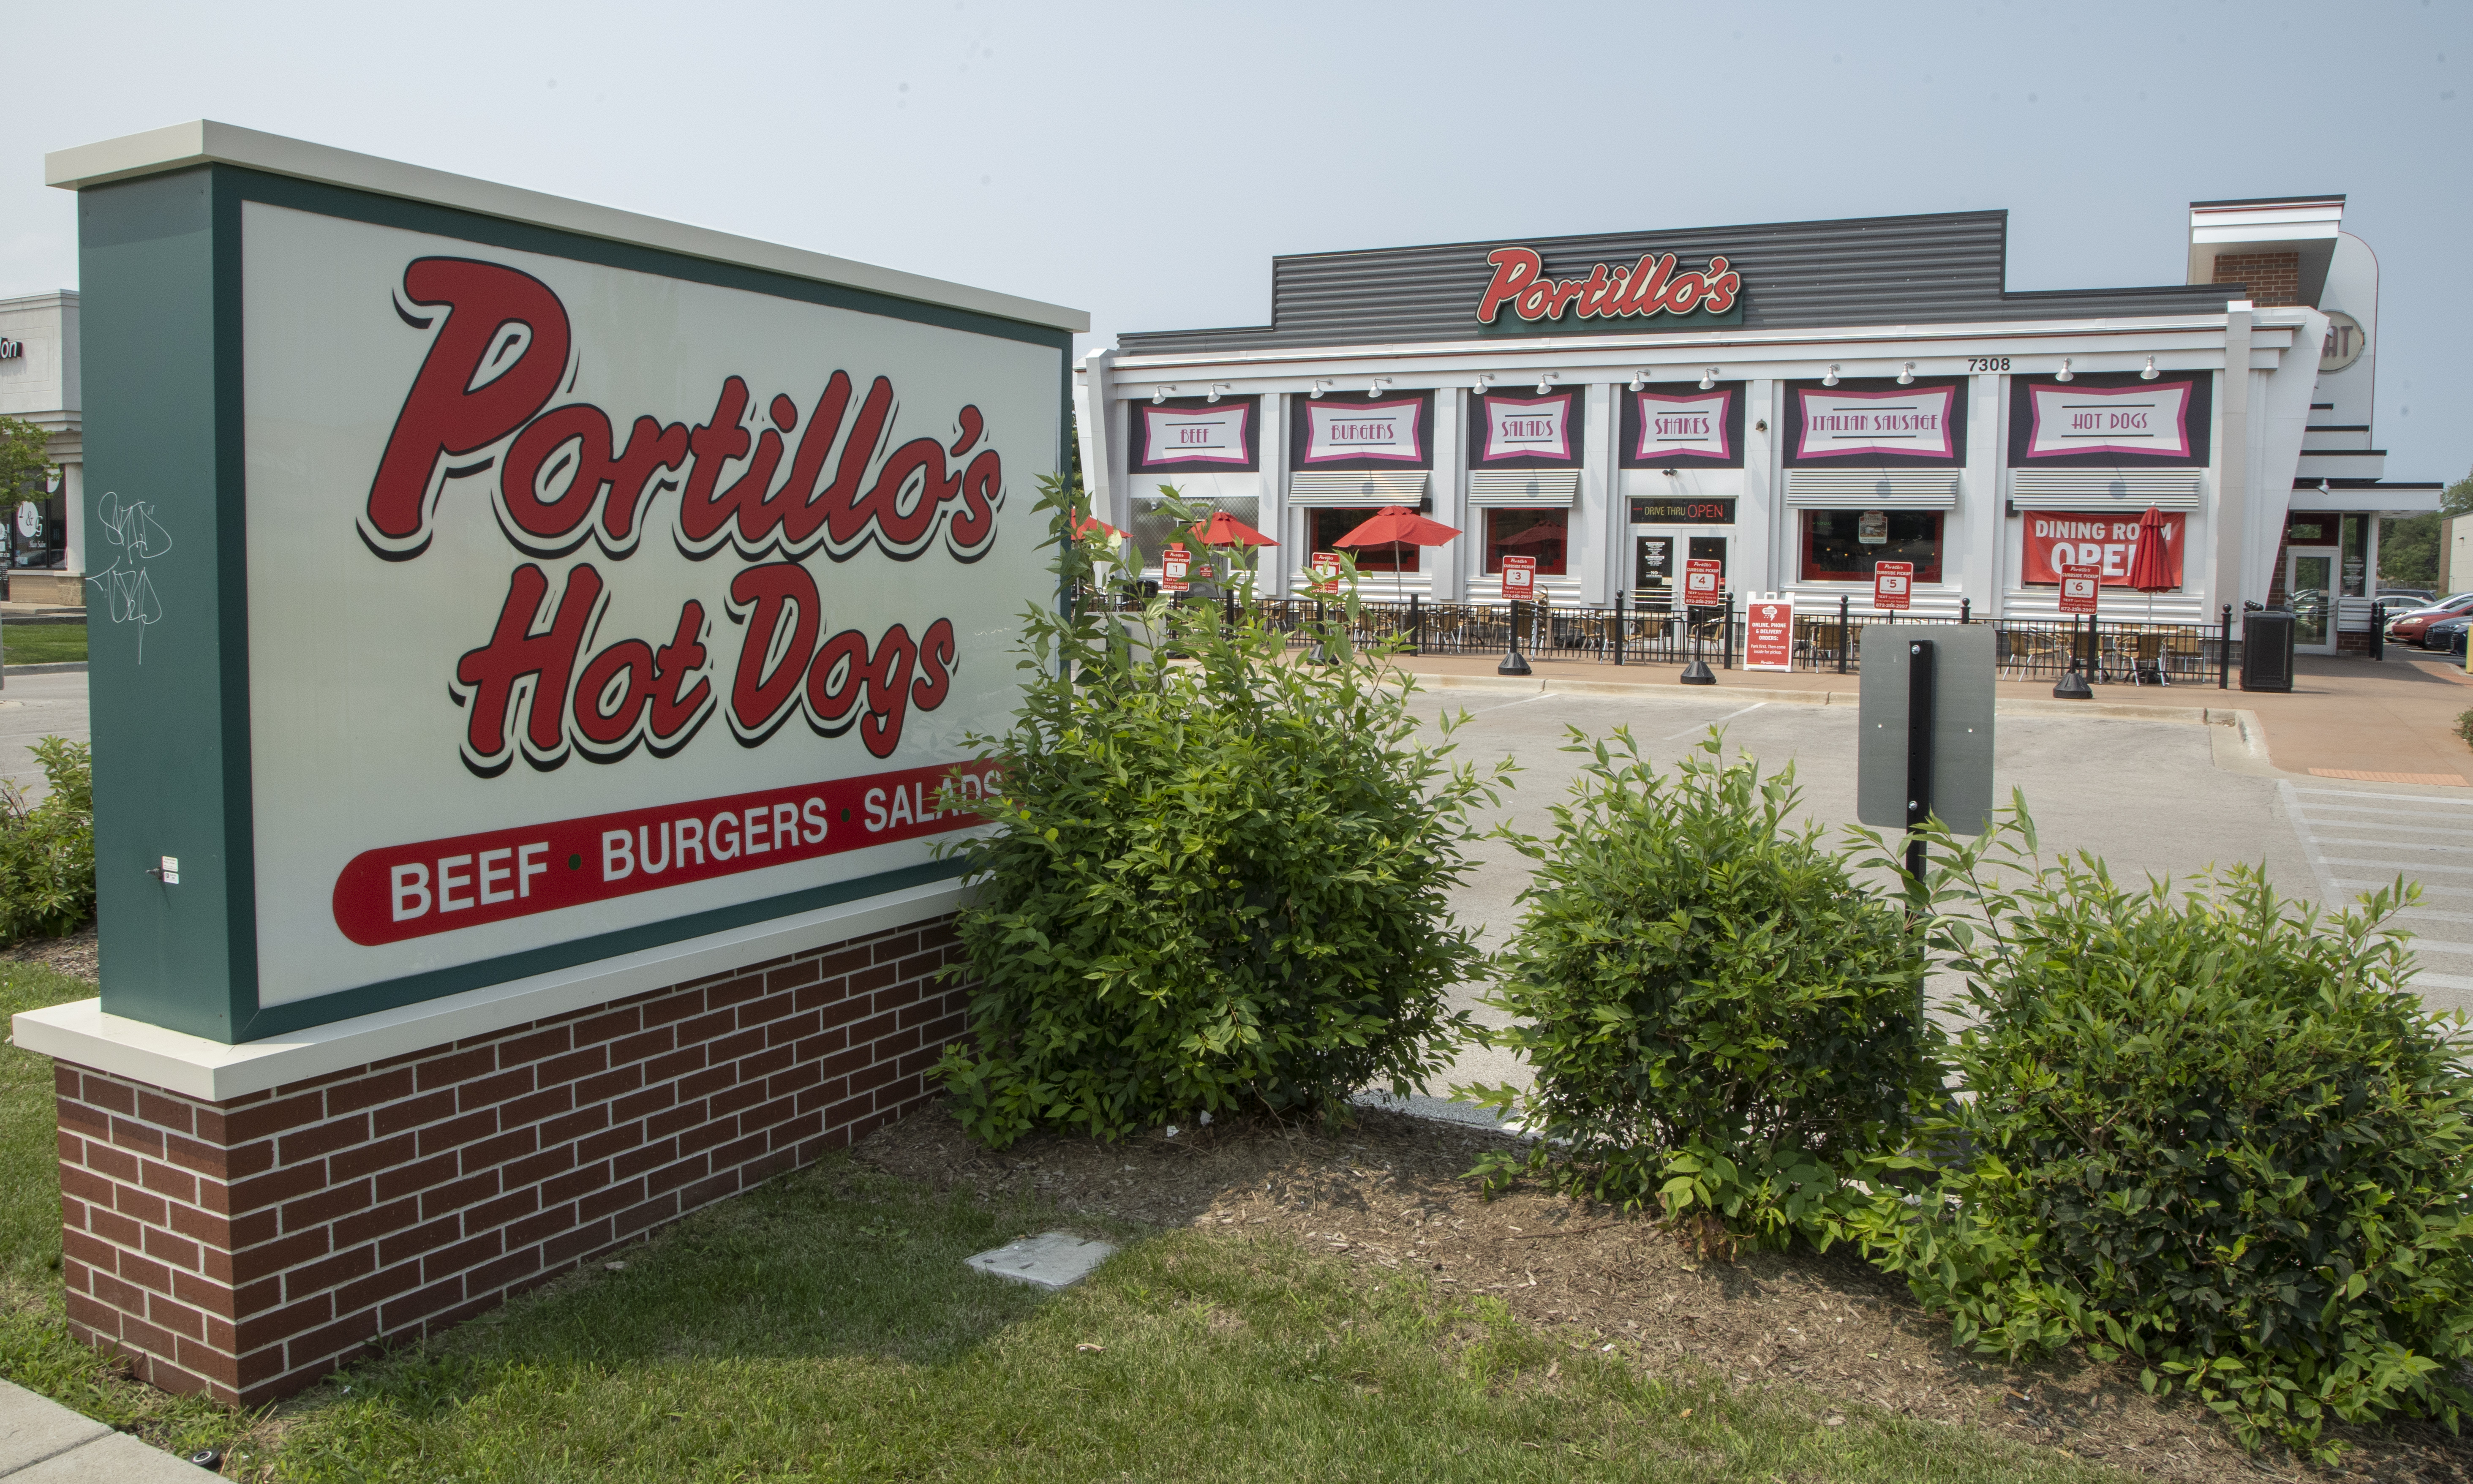 The Portillo's Hot Dogs at 7308 W. Lawrence Ave.